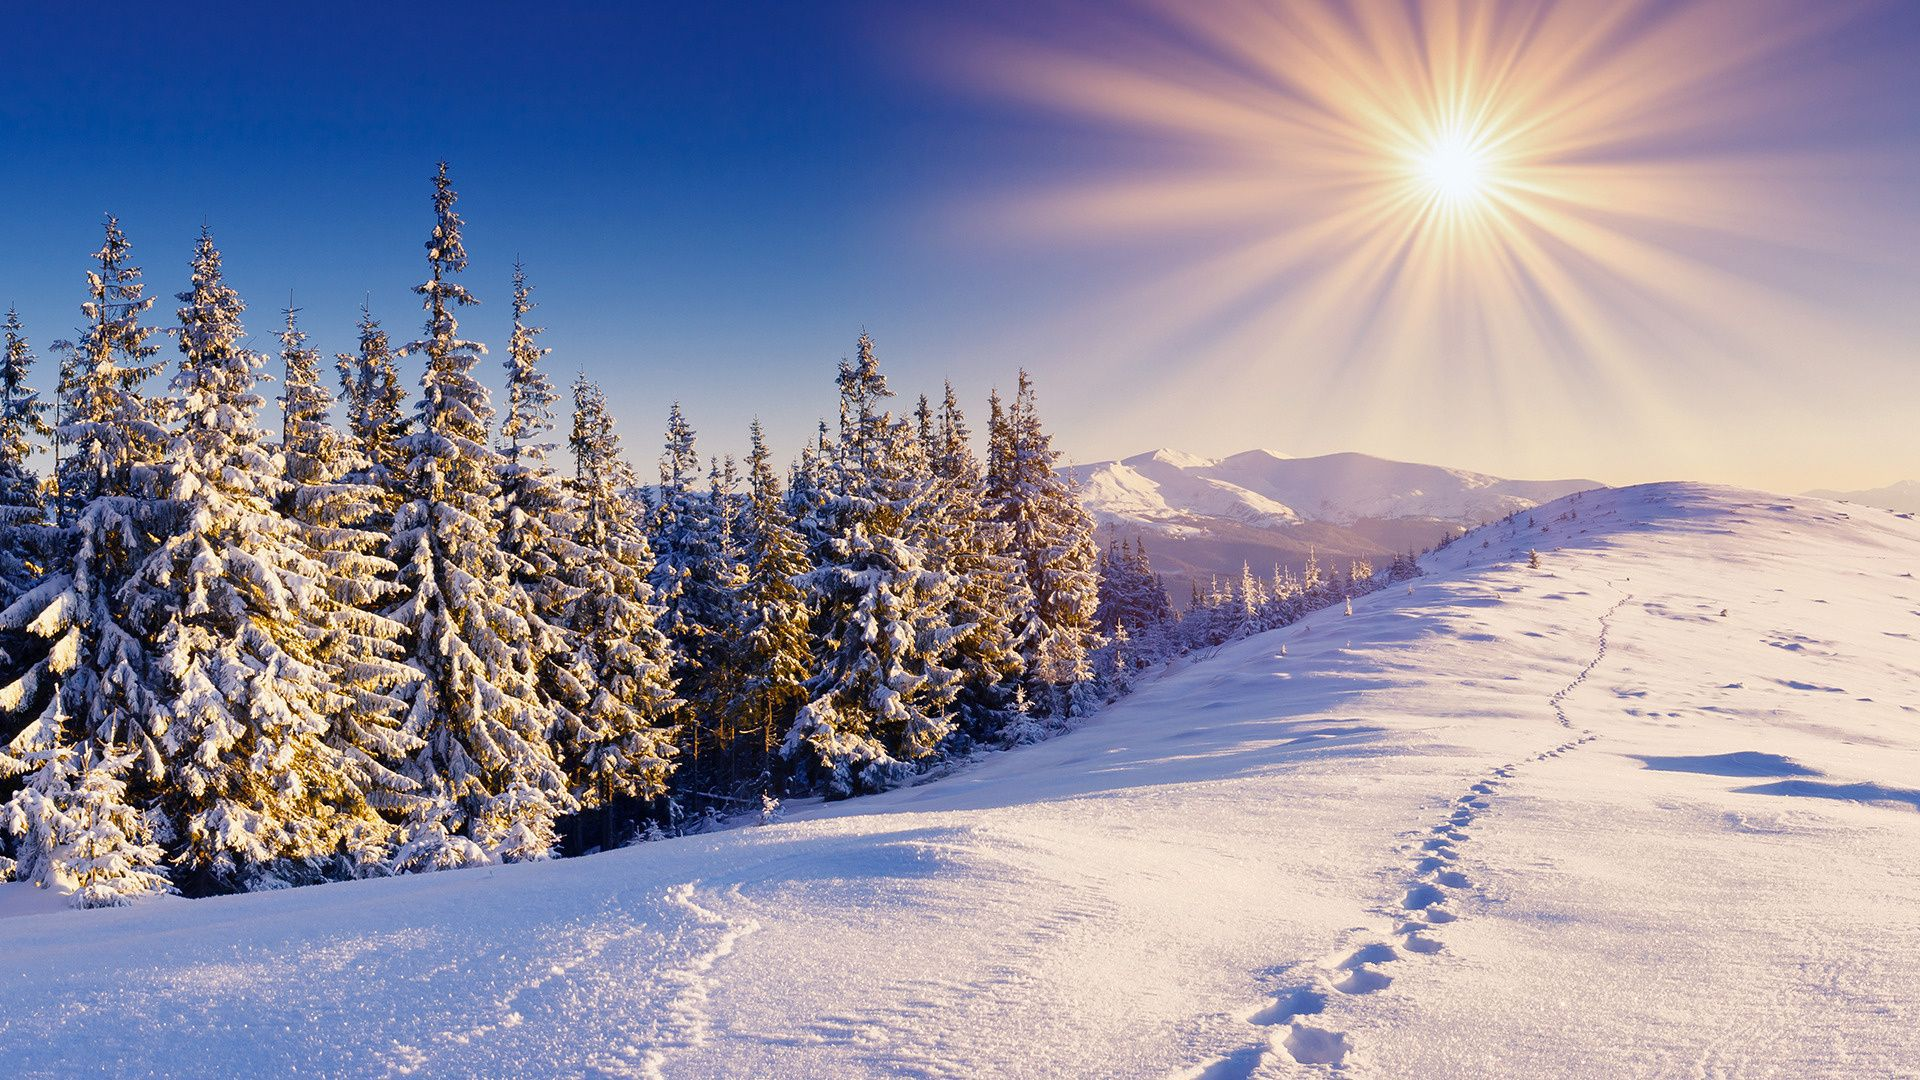 Winter archives - Hd snow mountain wallpaper ...